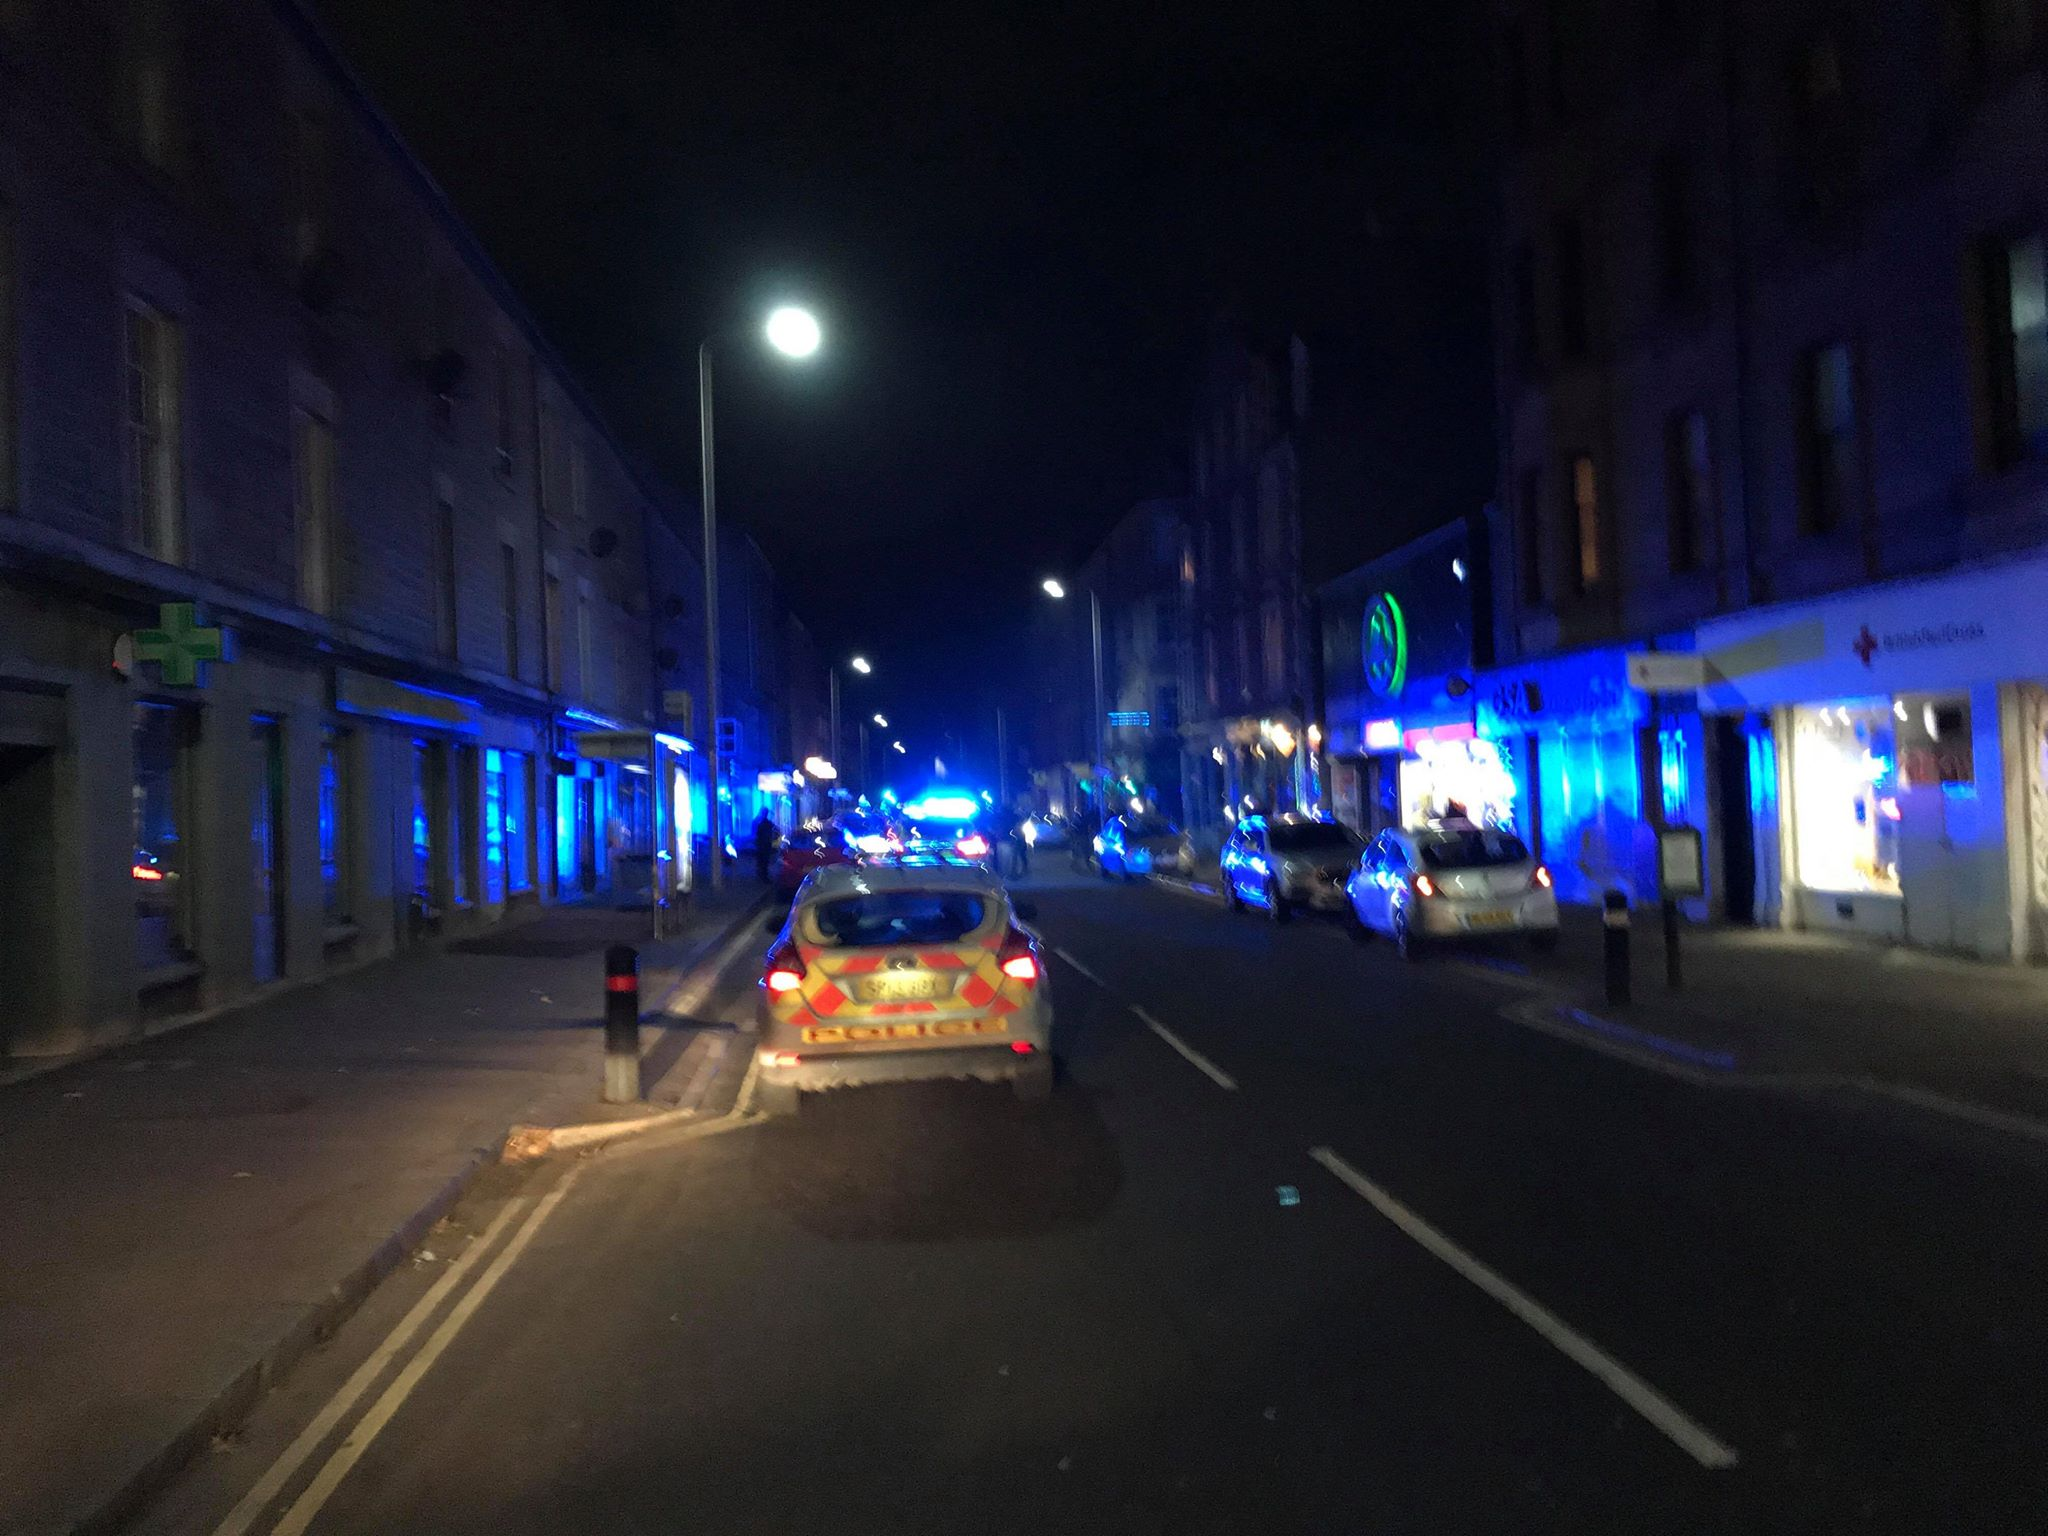 Police on the scene during the operation